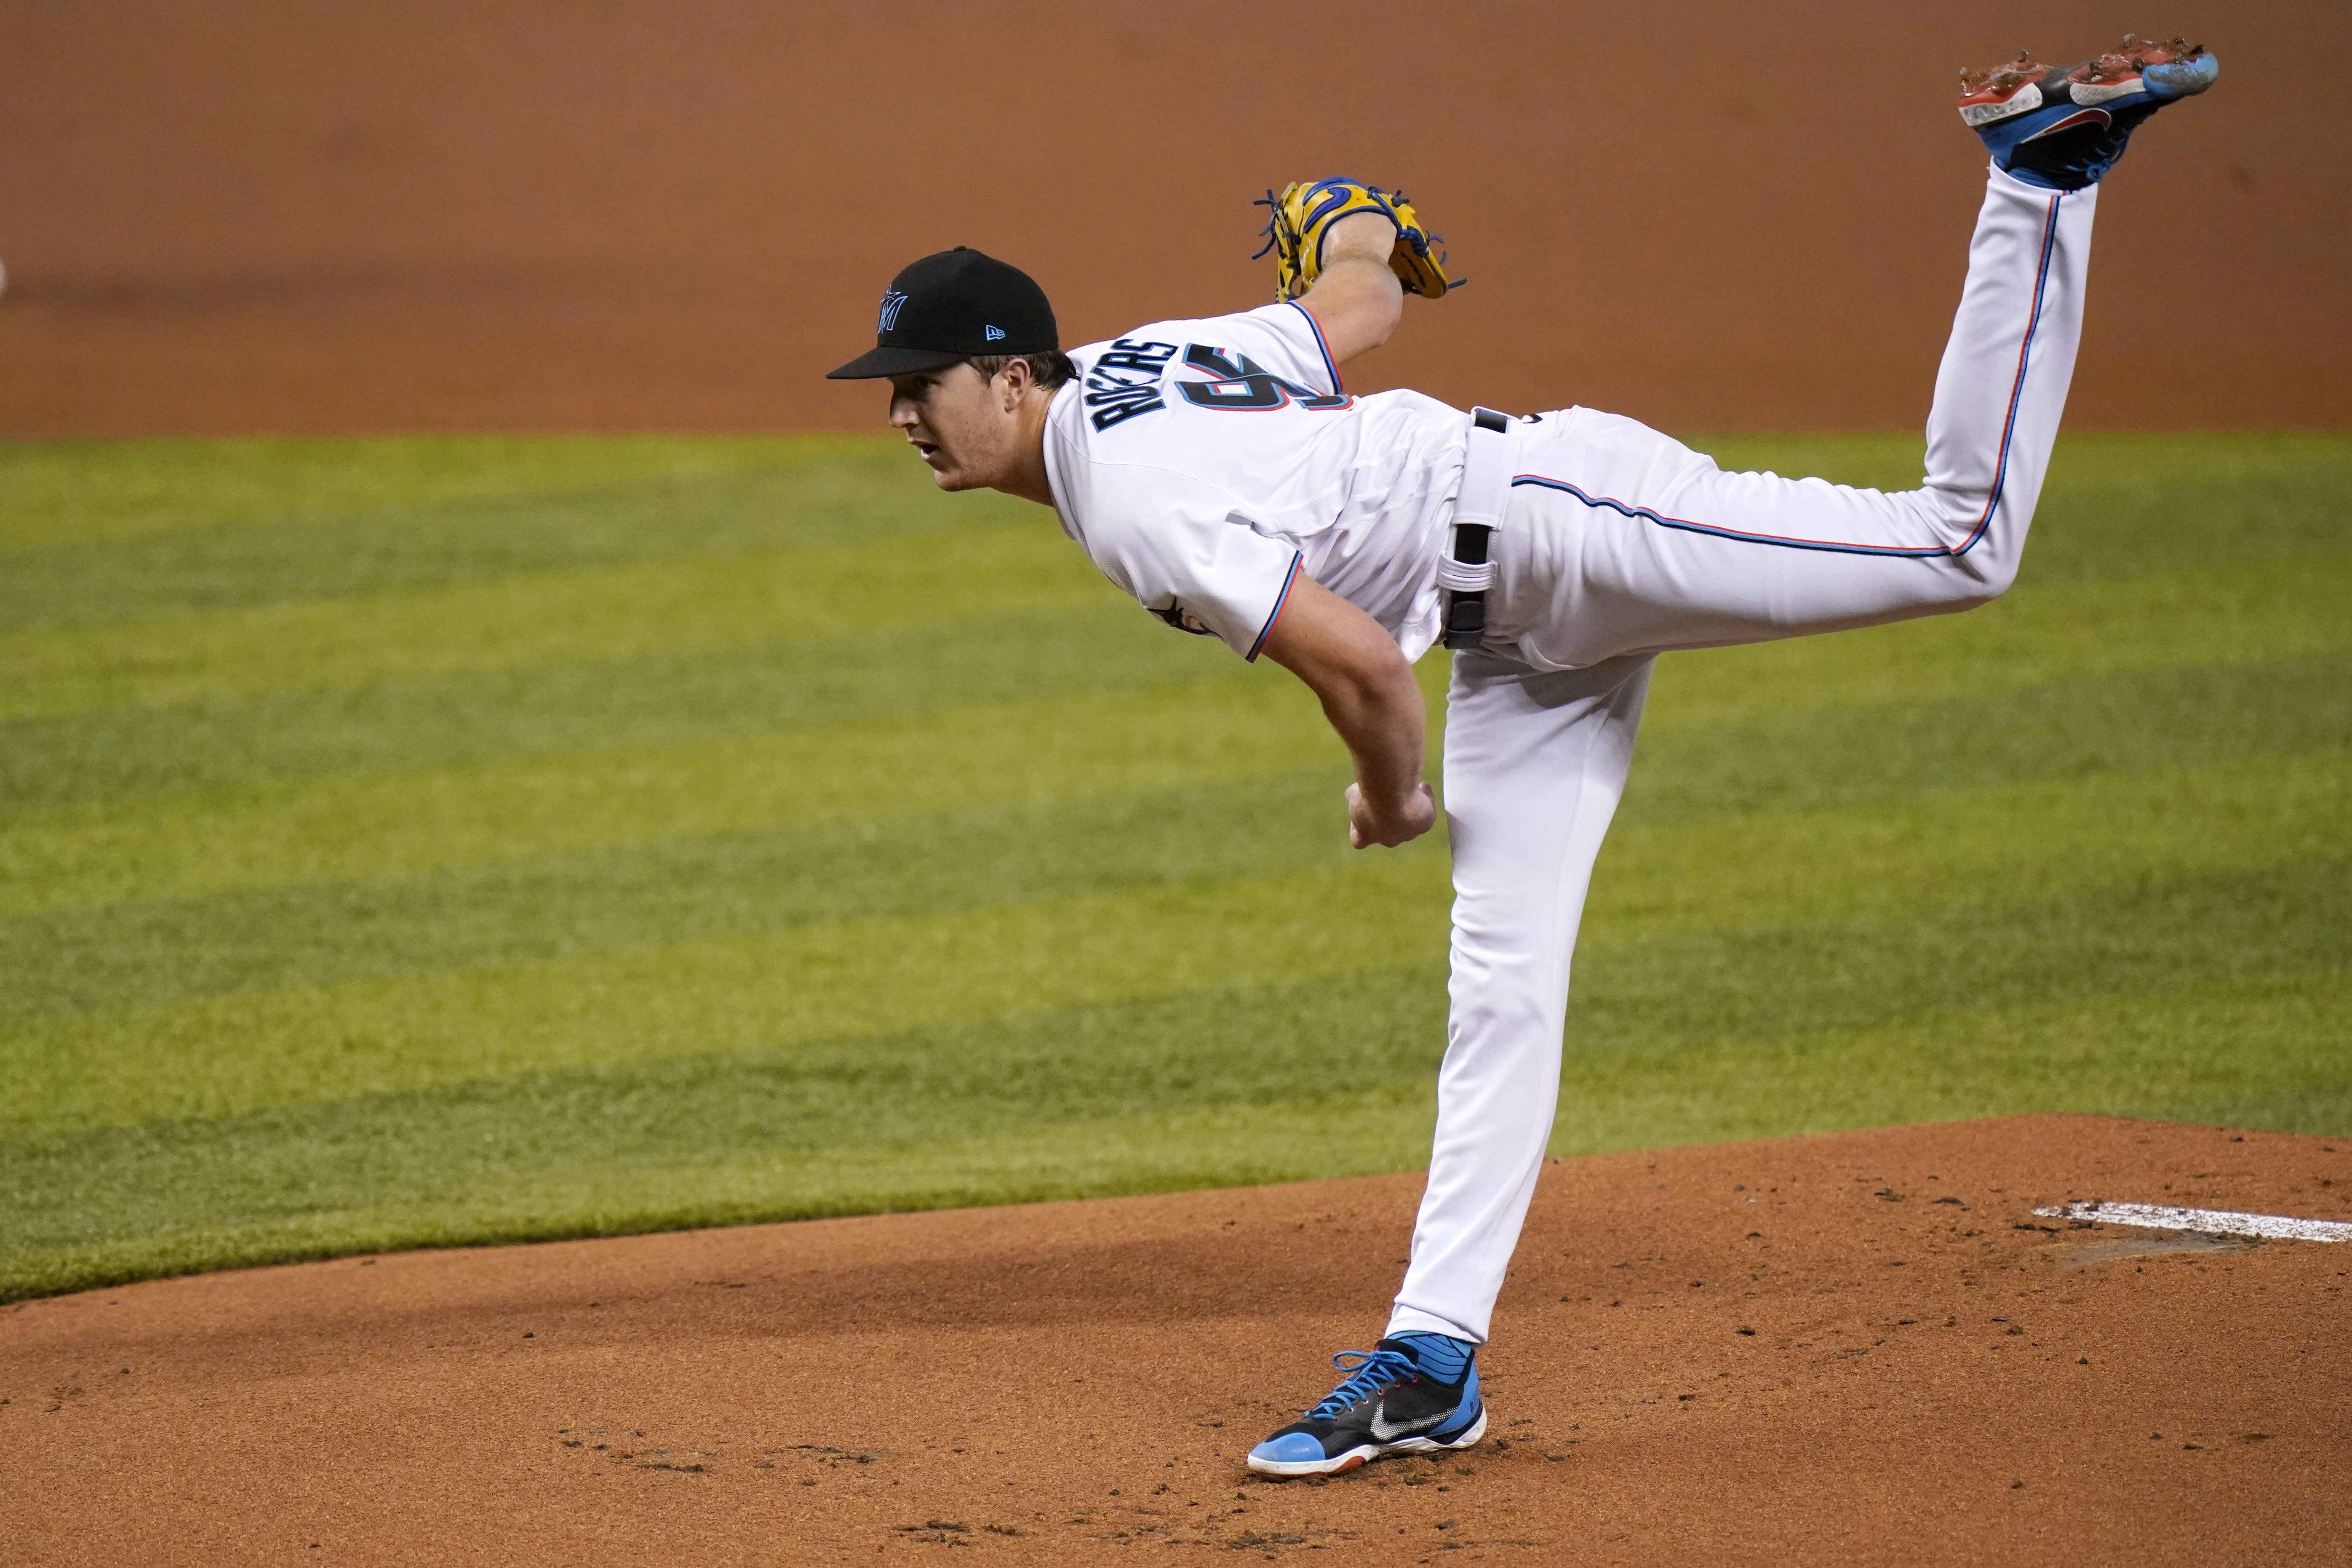 Miami Marlins starting pitcher Trevor Rogers follows through on a delivery during the first inning of a baseball game against the Boston Red Sox, Wednesday, Sept. 16, 2020, in Miami. (AP Photo/Lynne Sladky)